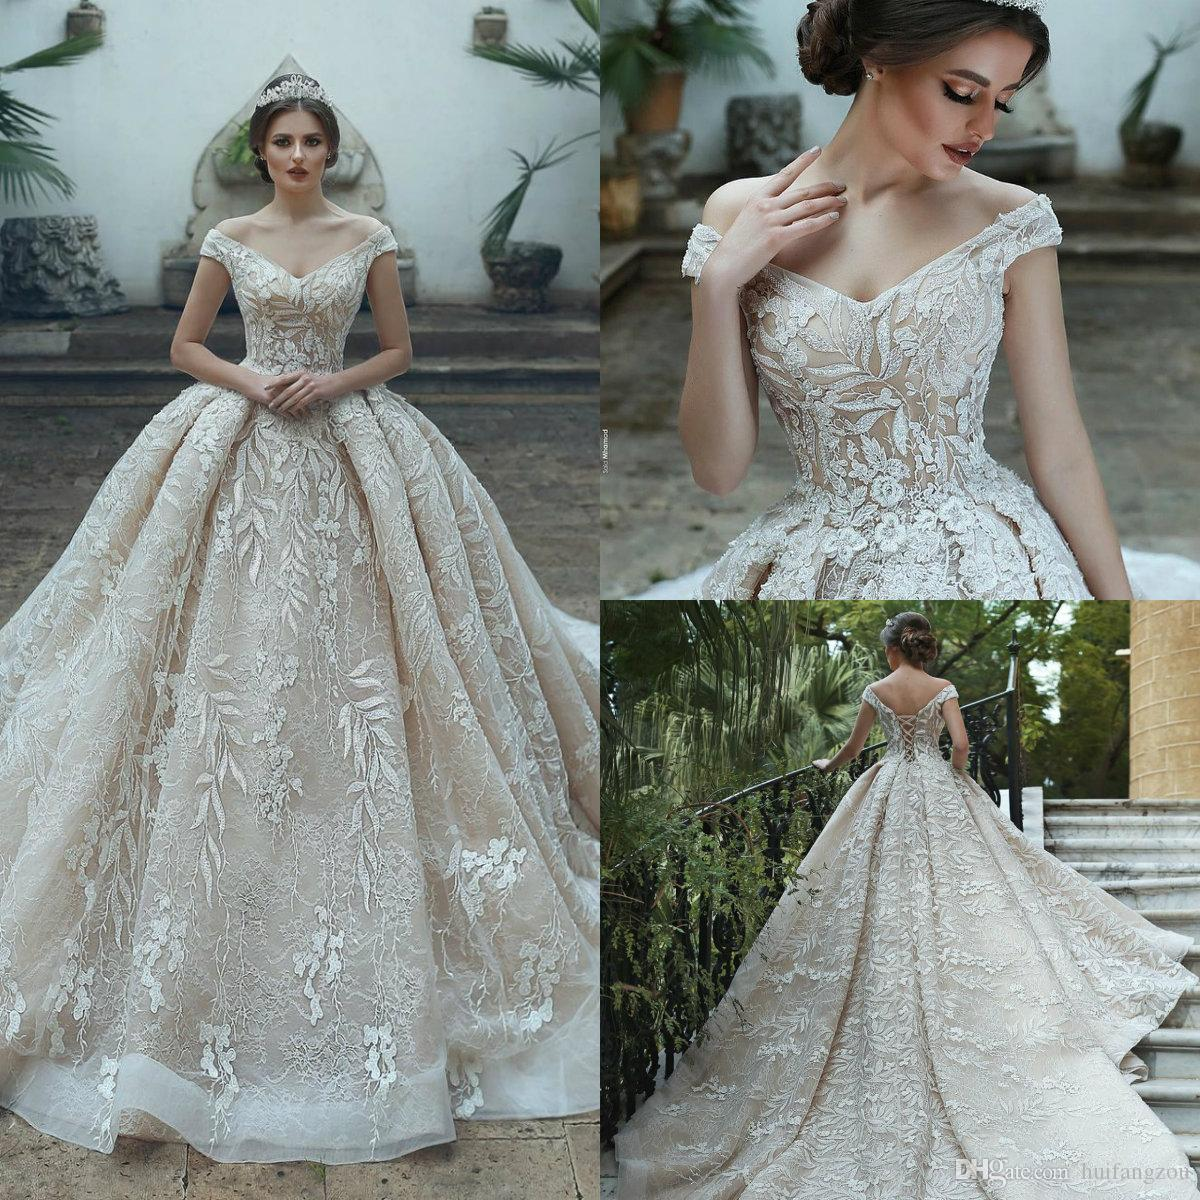 2019 Vintage Plus Size Wedding Dresses Off Shoulder Appliques Lace Ball Gown Wedding Dress with Long Train Luxury Bridal Gowns